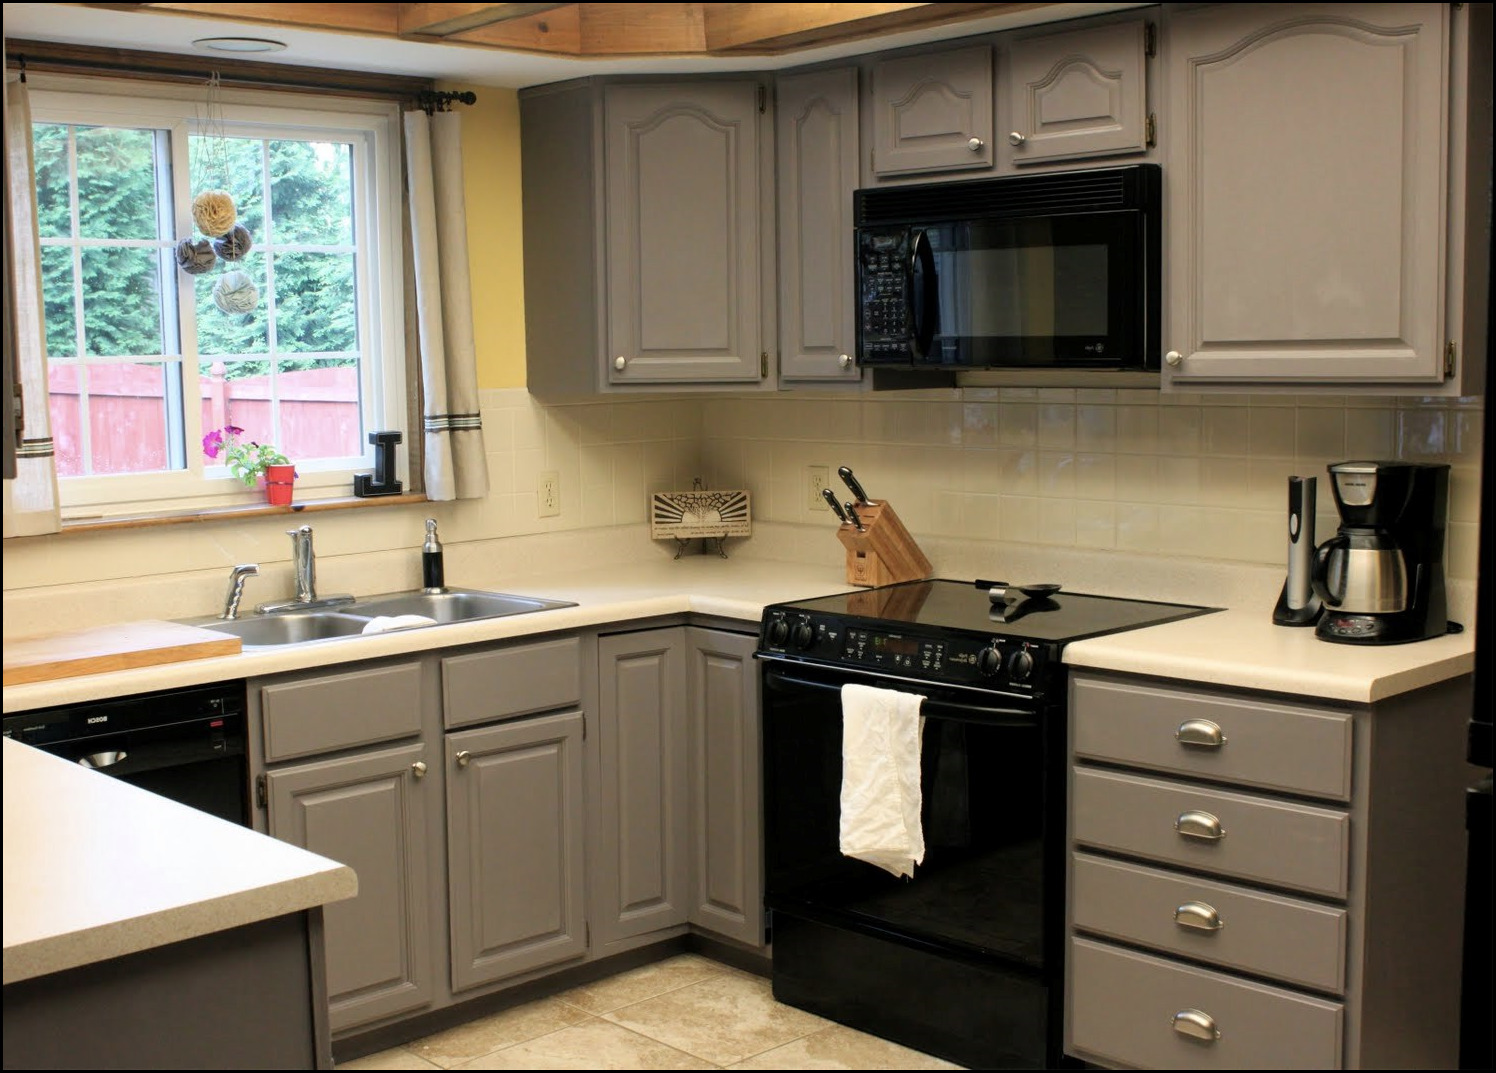 Kitchen Cabinet Spray Paint Spray Painting Kitchen Cabinets